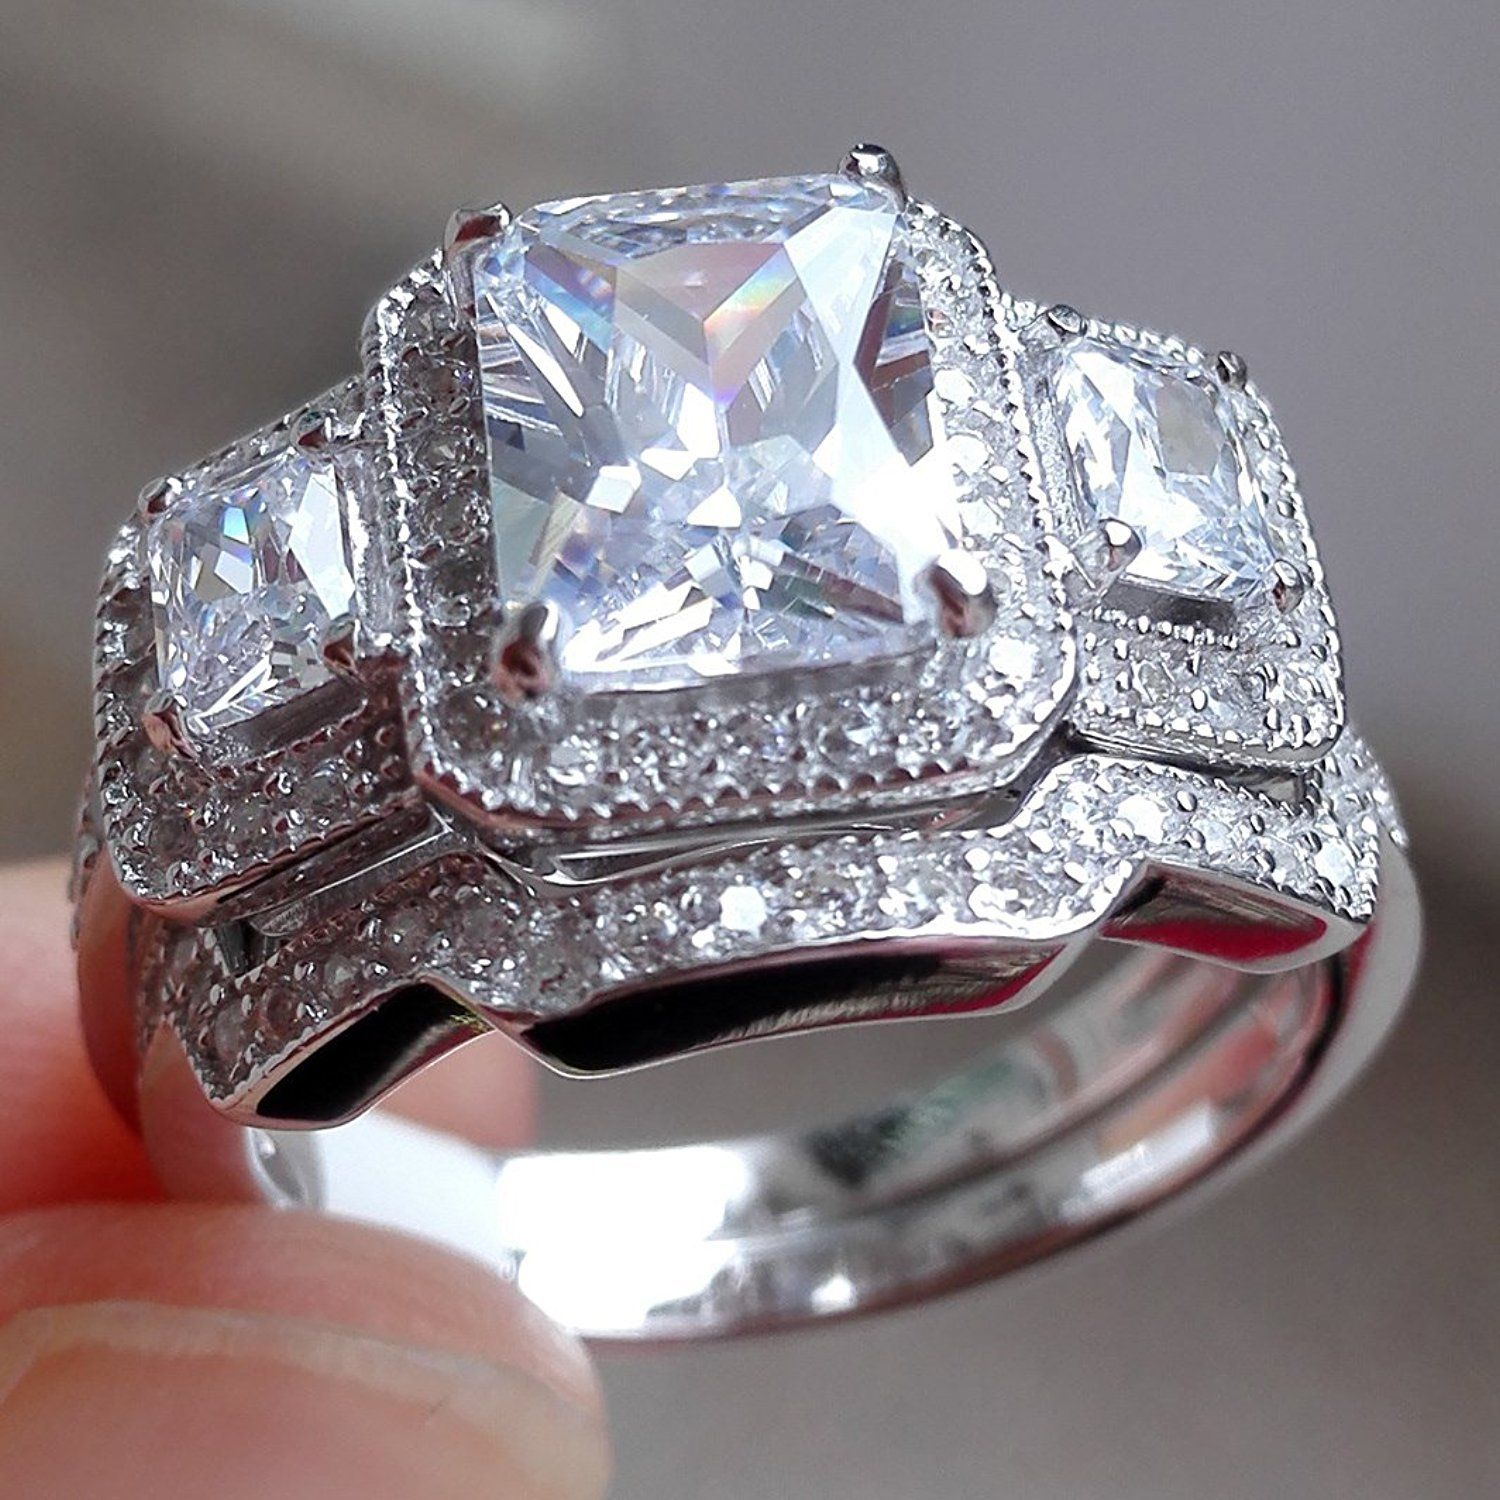 3 Ct Radiant Cut White Cz 925 Sterling Silver Wedding Band